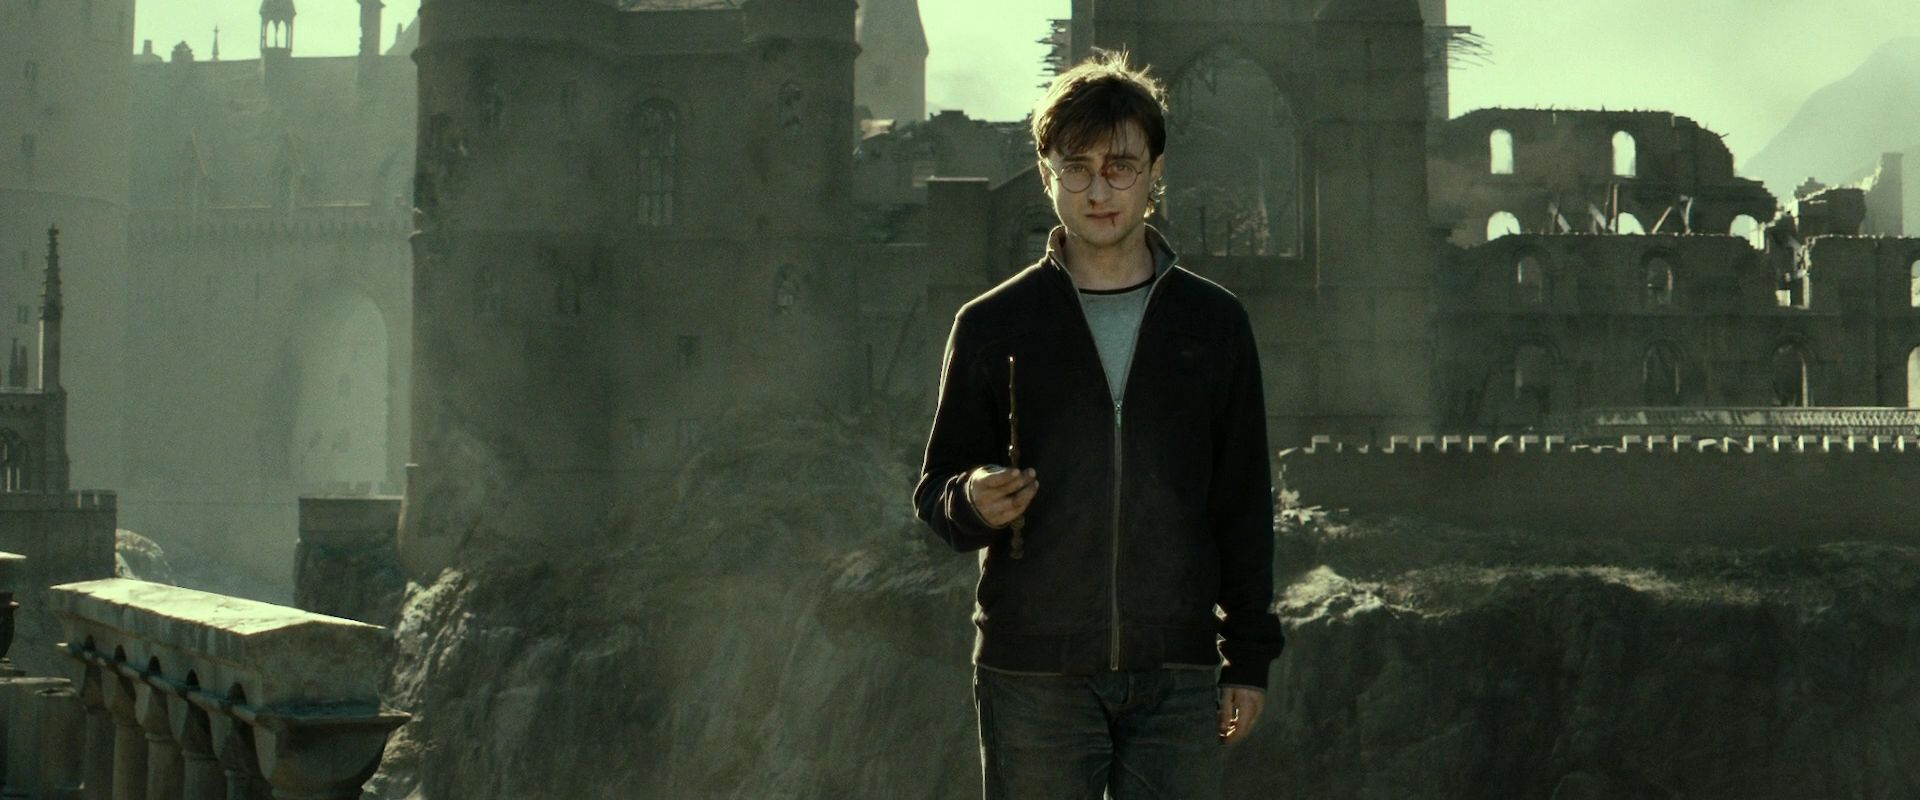 Hp dh part 2 harry james potter image 26622853 fanpop for Most powerful wand in harry potter